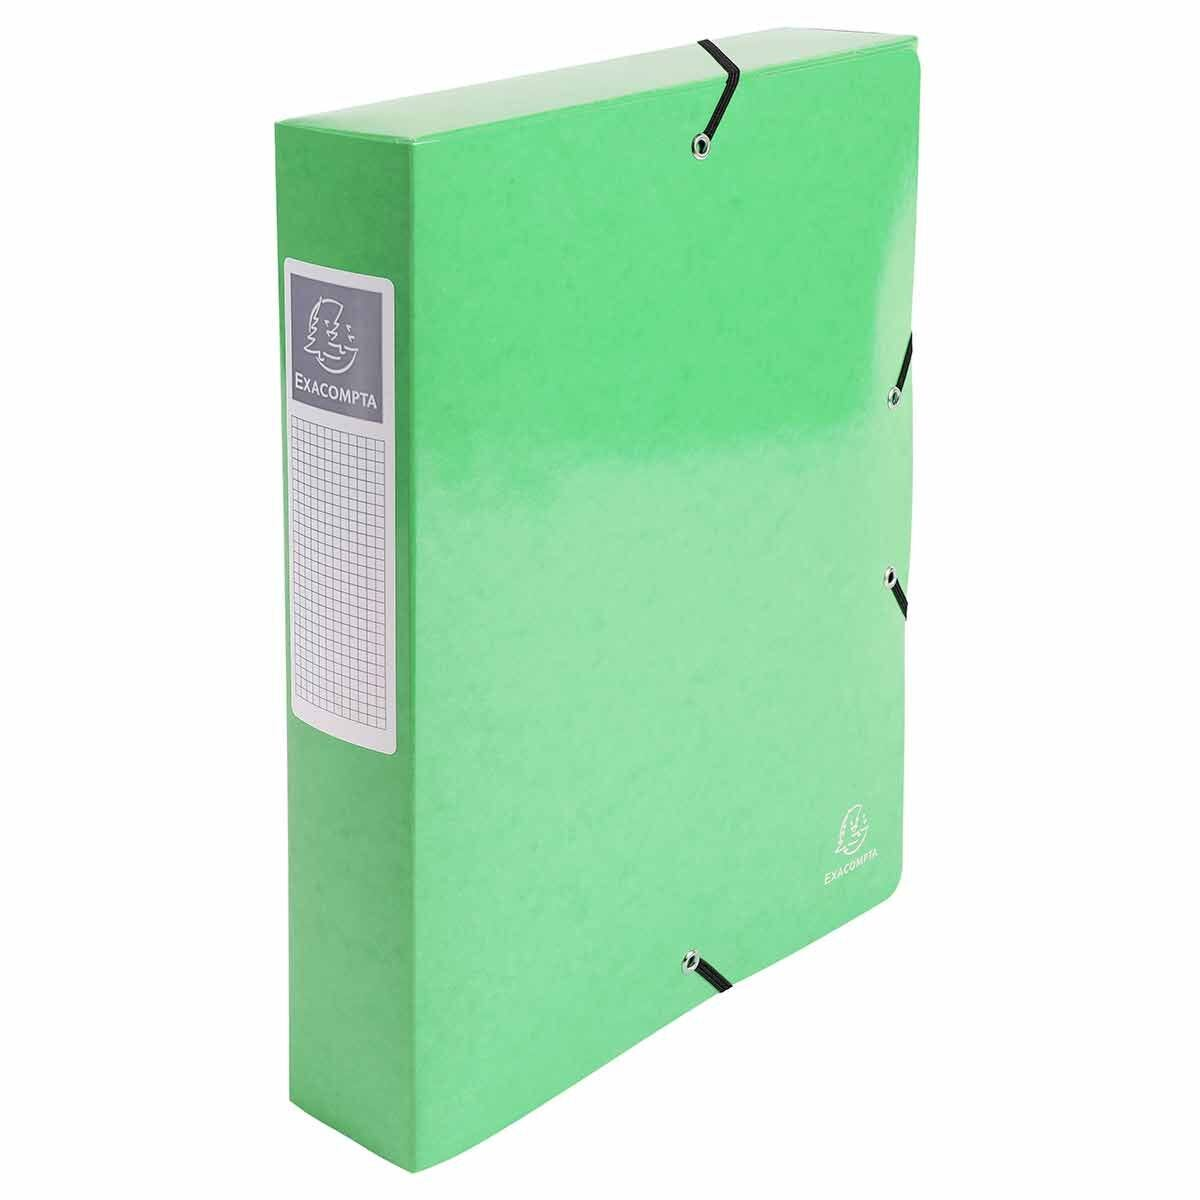 Exacompta Iderama Elasticated A4 Box File 60mm Pack of 8 Lime Green